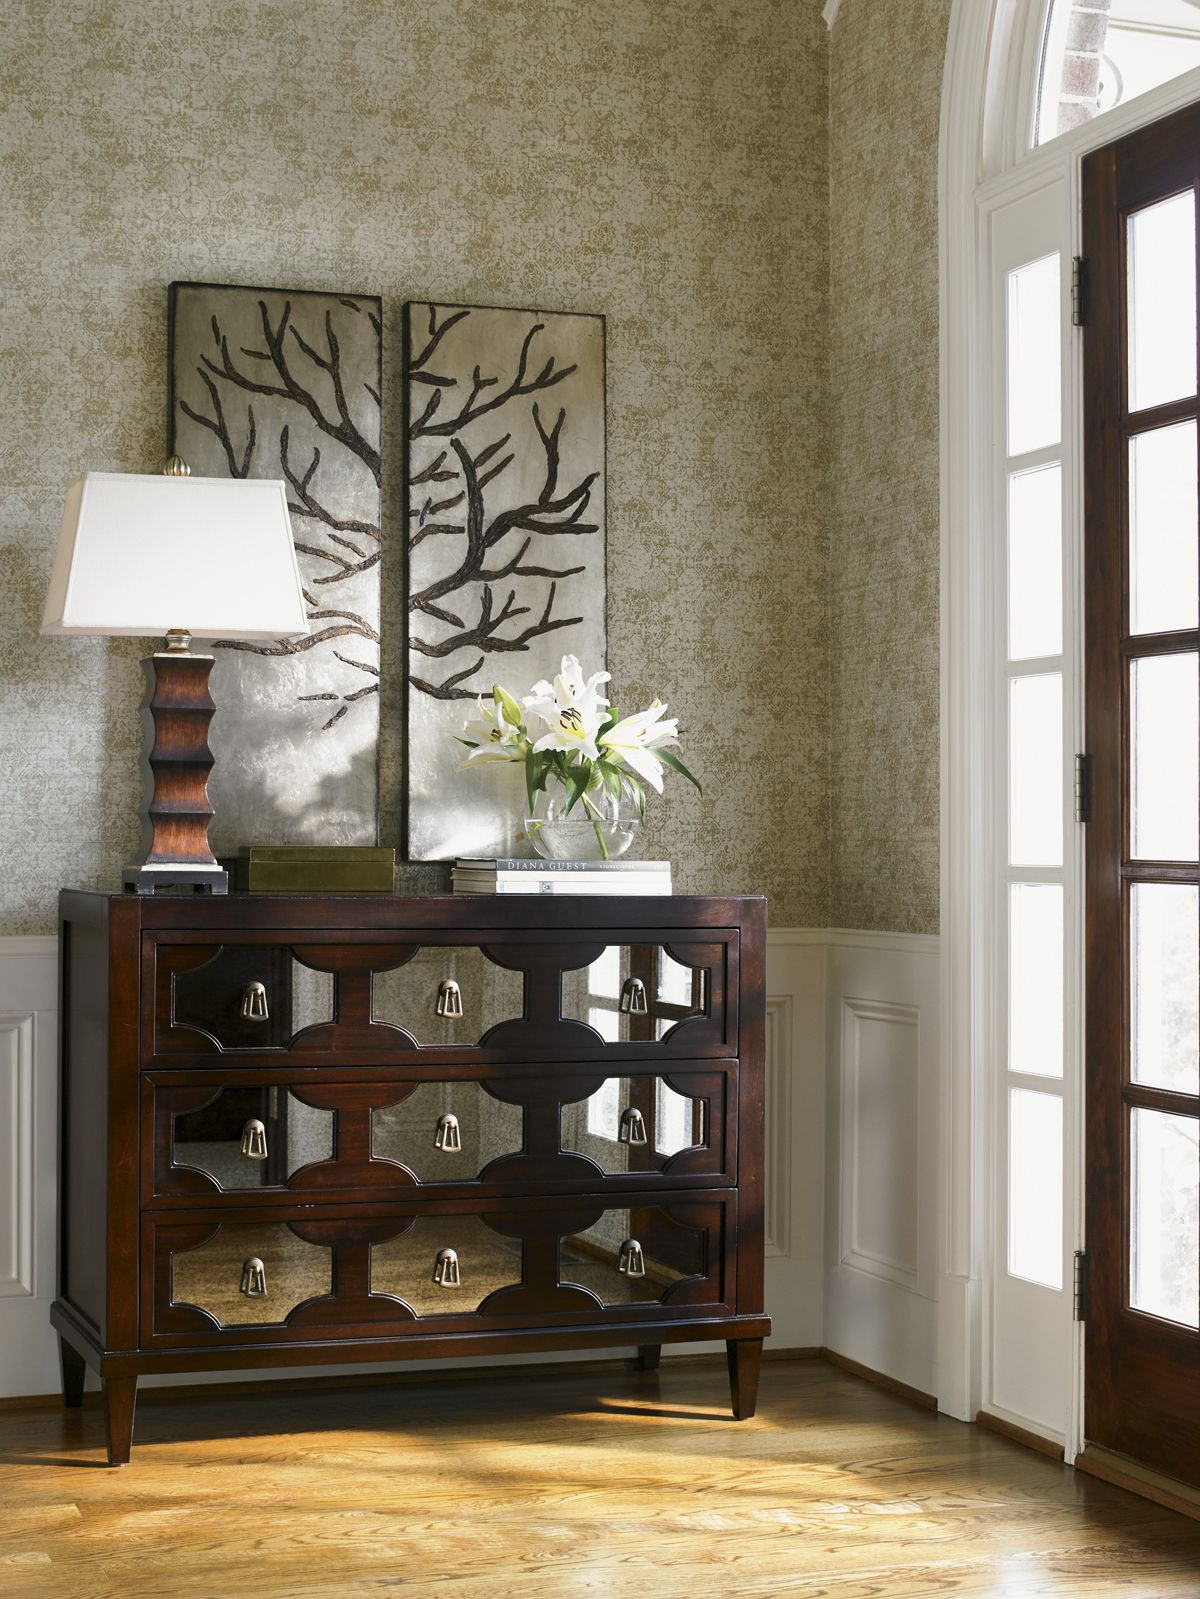 Kensington place winslow mirrored hall chest lexington furniture foyer hallchest